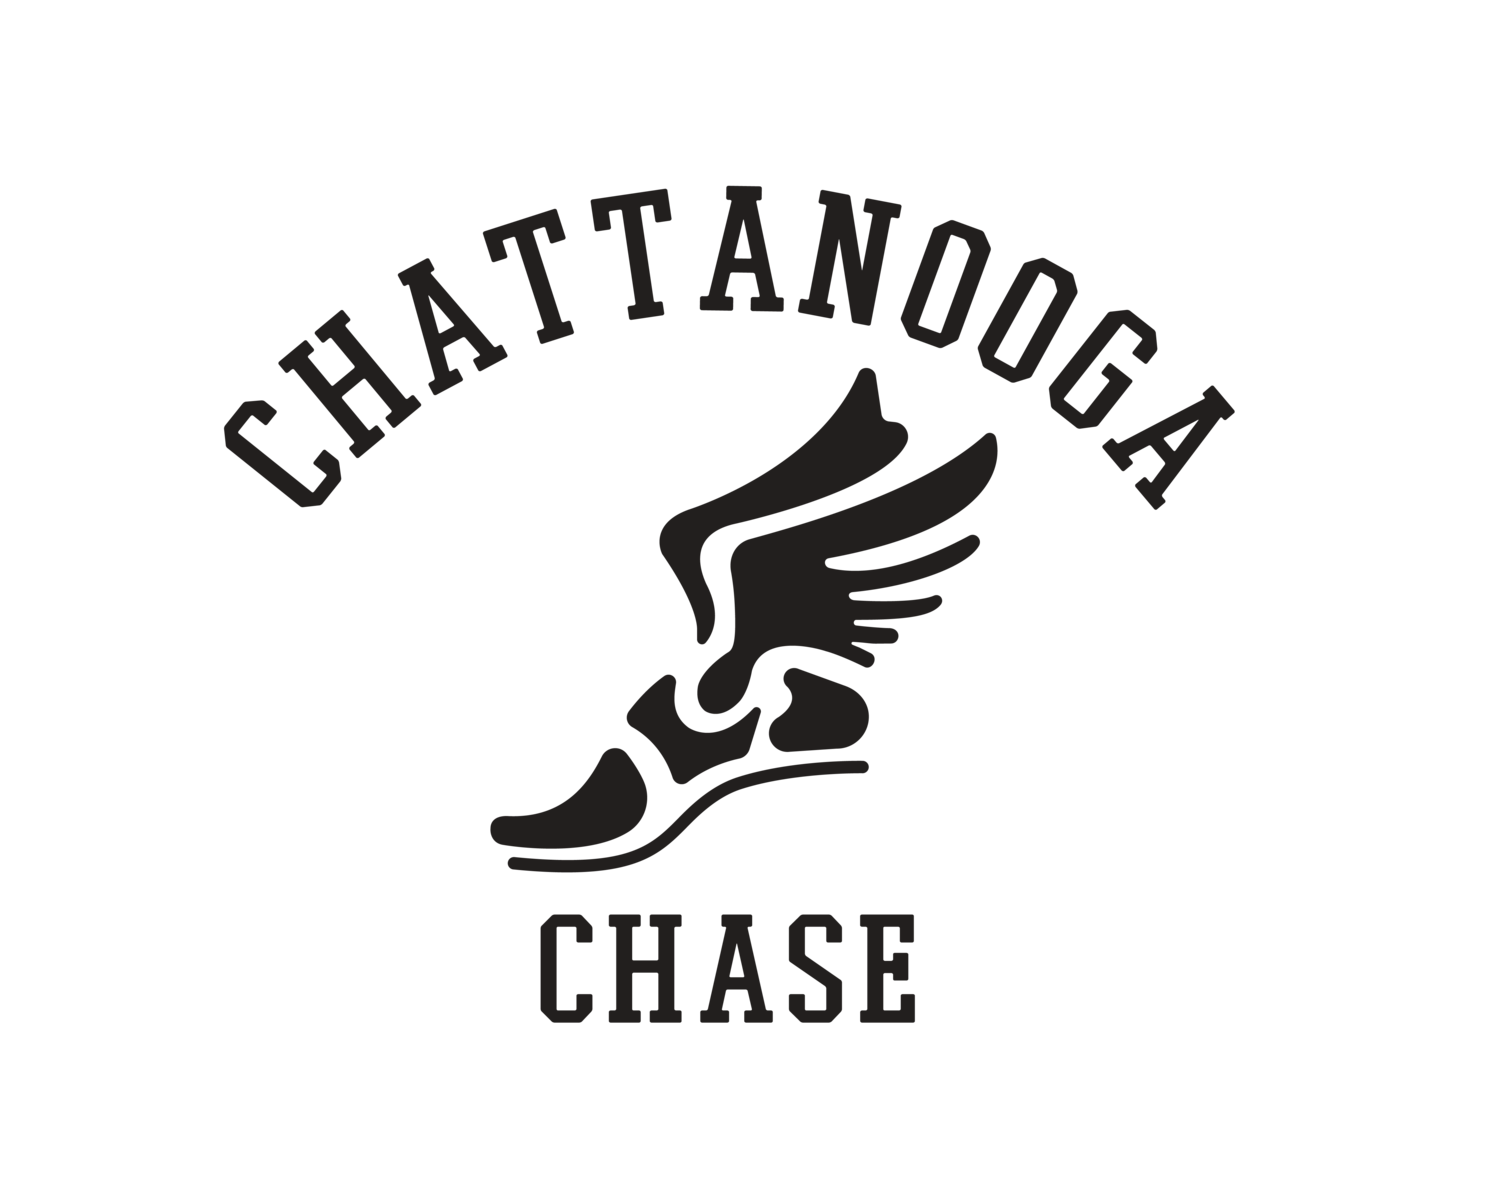 Chattanooga Chase